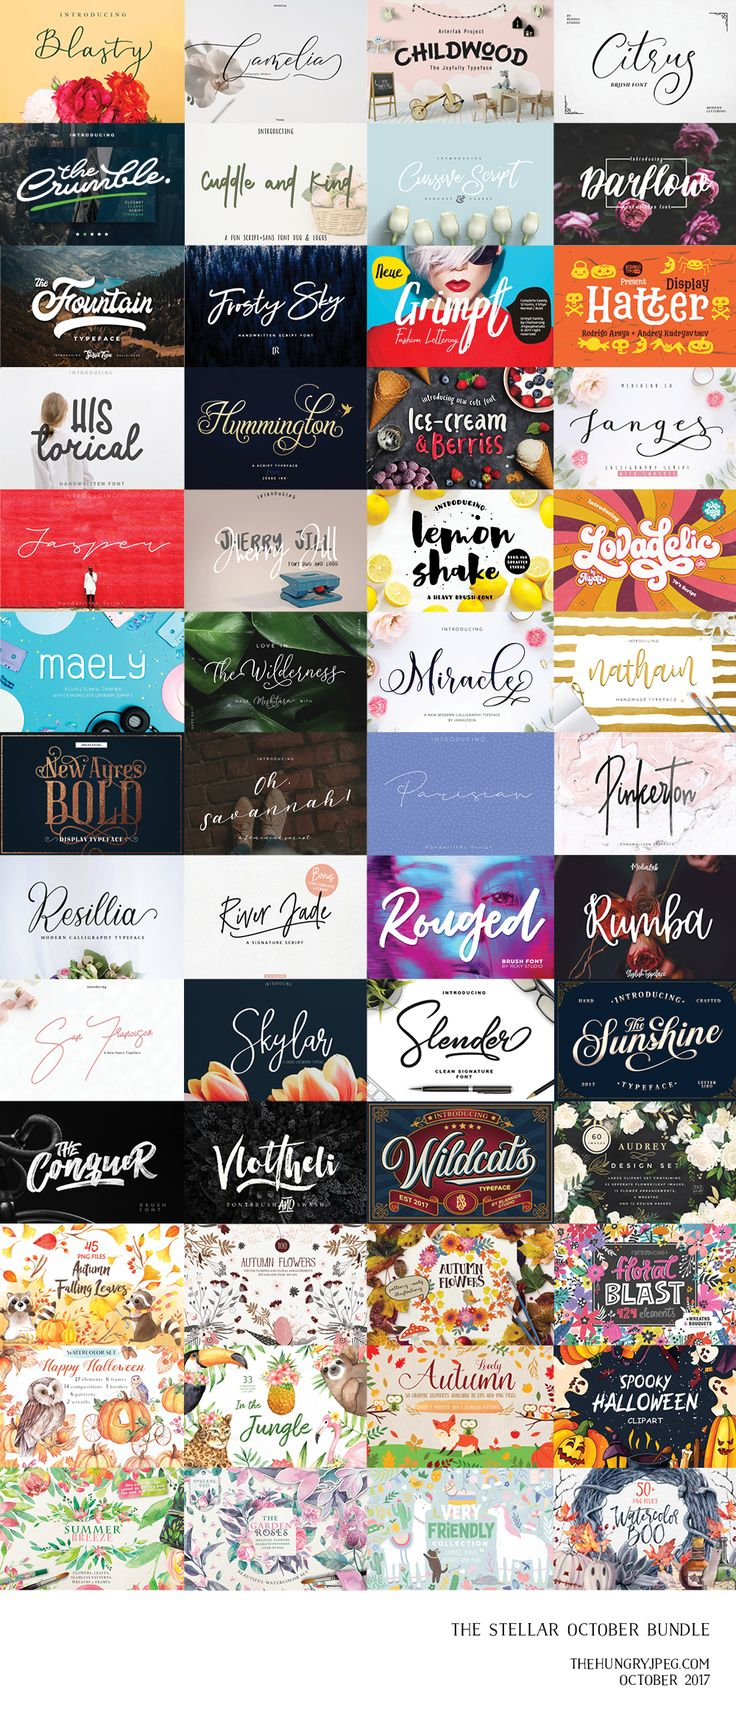 The long wait is now over!! Our latest Stellar October Bundle includes39 premium font families (75 font files) and 13 graphics packs (over 1600 elements & patterns) for you to elevate your toolkit in no time for the most beautiful season! Get this amazing collection for JUST $29 for a limited time only, that's96% OFF the regular price ($783)!! As with all bundles sold on TheHungryJPEG.com, our Complete License comes included, at no extra cost.